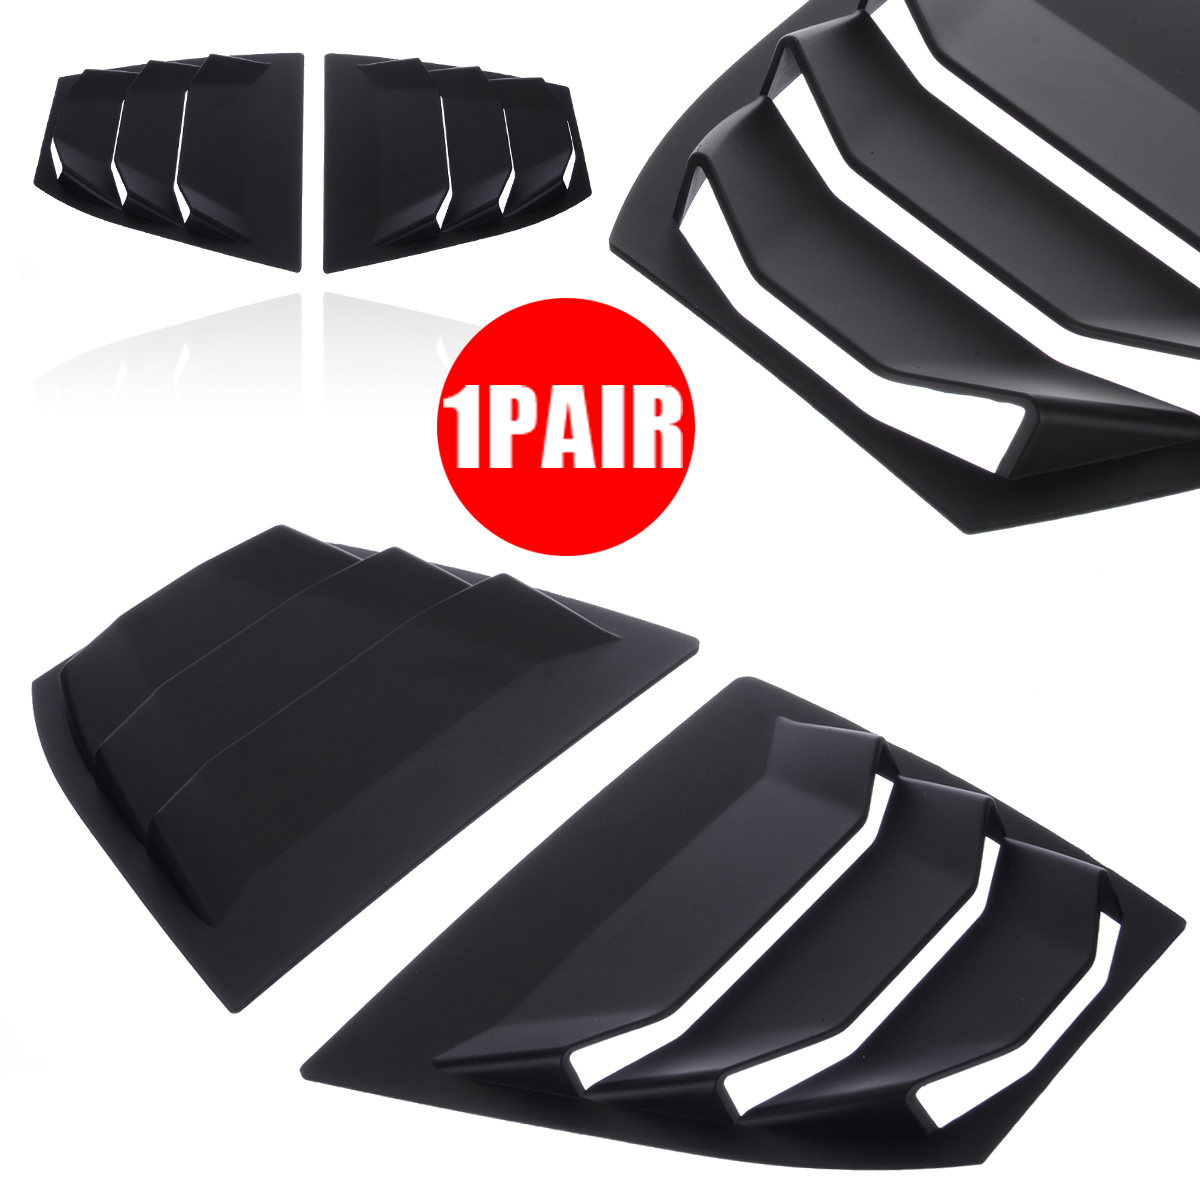 1 Pair Rear Quarter Panel Window Side Louver Vent ABS Matte Black For Mazda 3 AXELA 14 17 in Chromium Styling from Automobiles Motorcycles